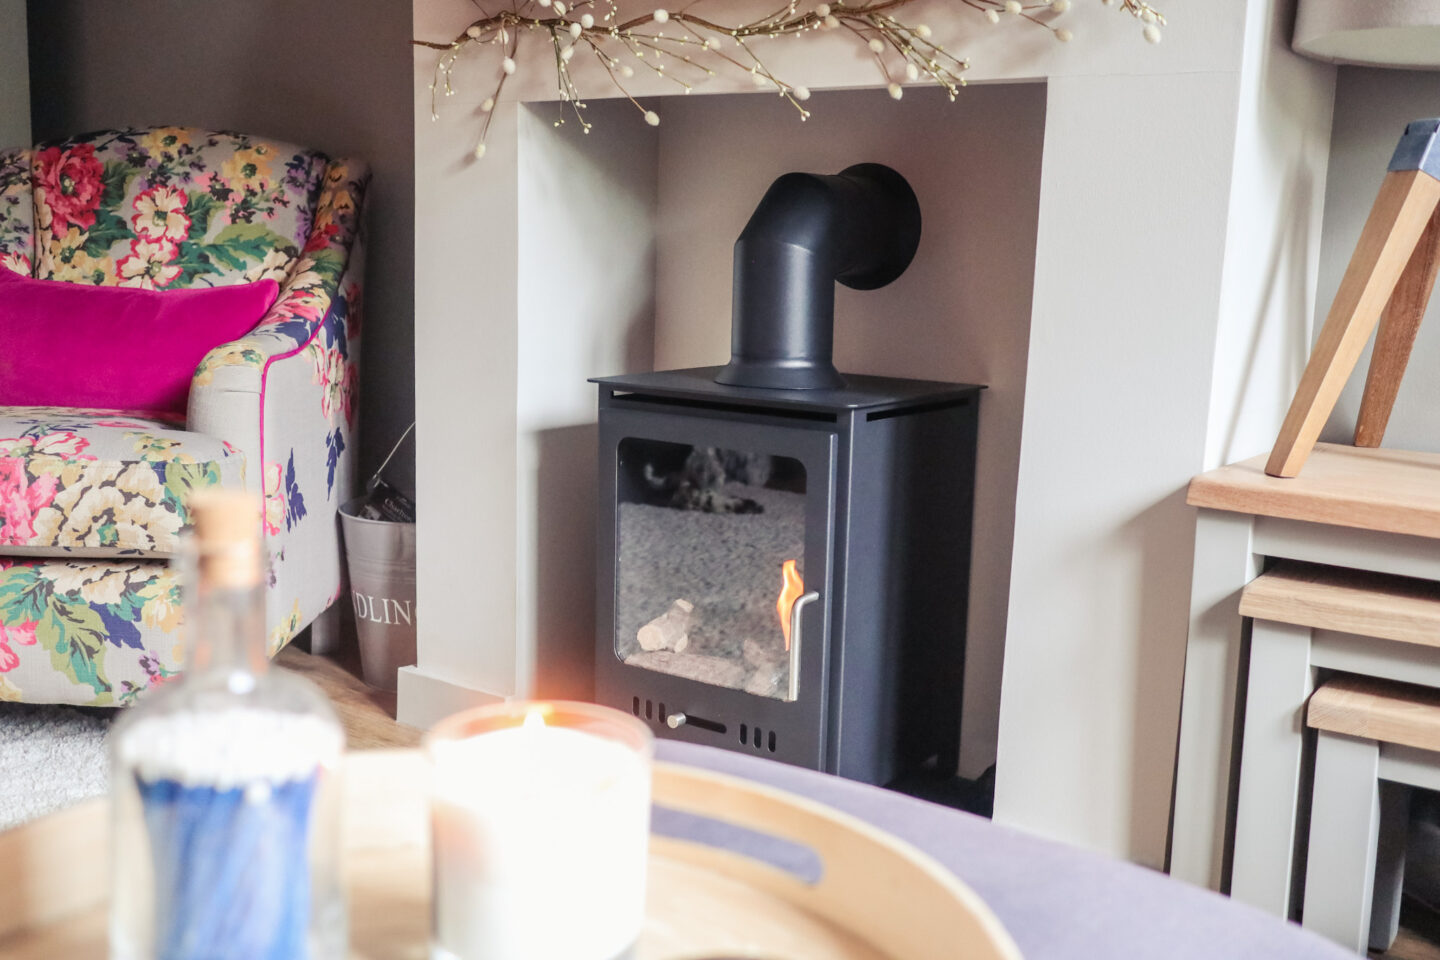 REVIEW: Imagin Fires Bredon Biofuel Fireplace